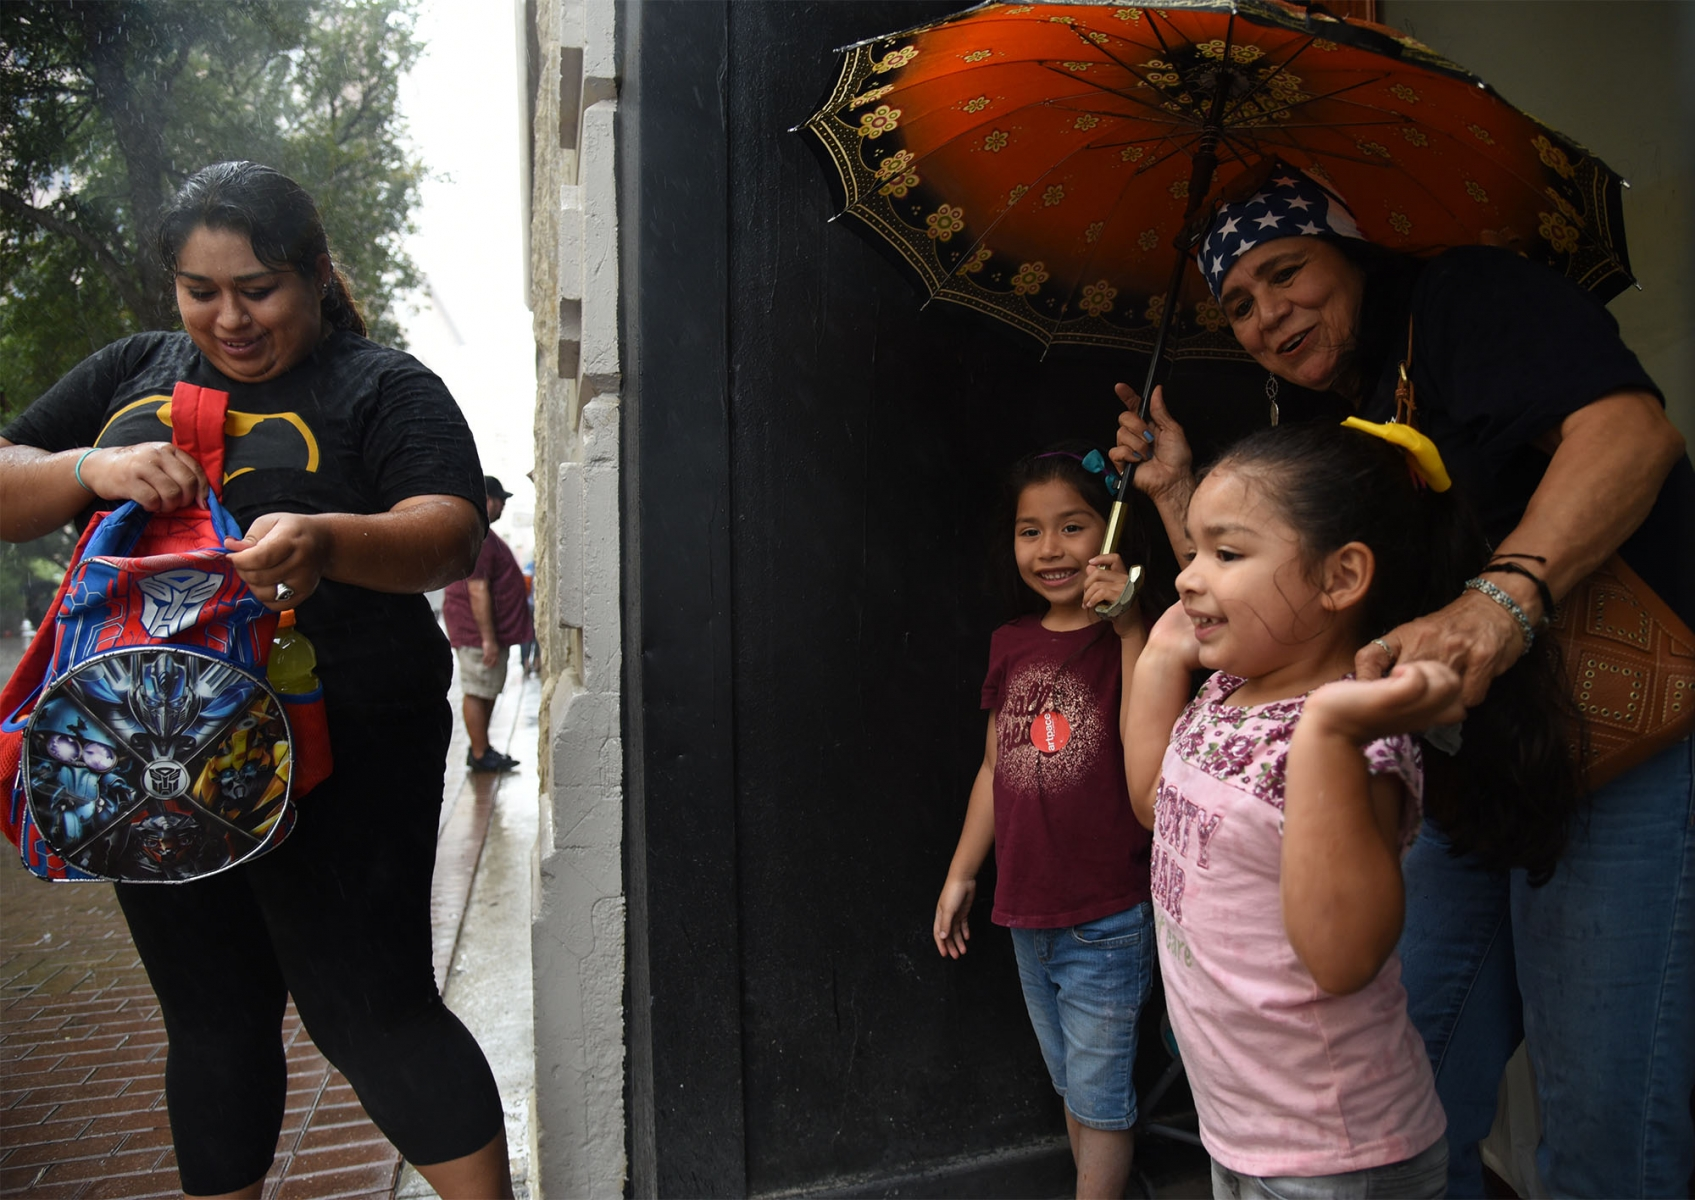 Valerie Gallerdo stands in the rain while her children Adrianna Guitierrez, 5, and Natalie Guitierrez, 4, wait with grandmother Martha Arollo during the 15th annual Chalk It Up event in downtown San Antonio. <em><b>Photo by V. Finster | Heron</b></em>